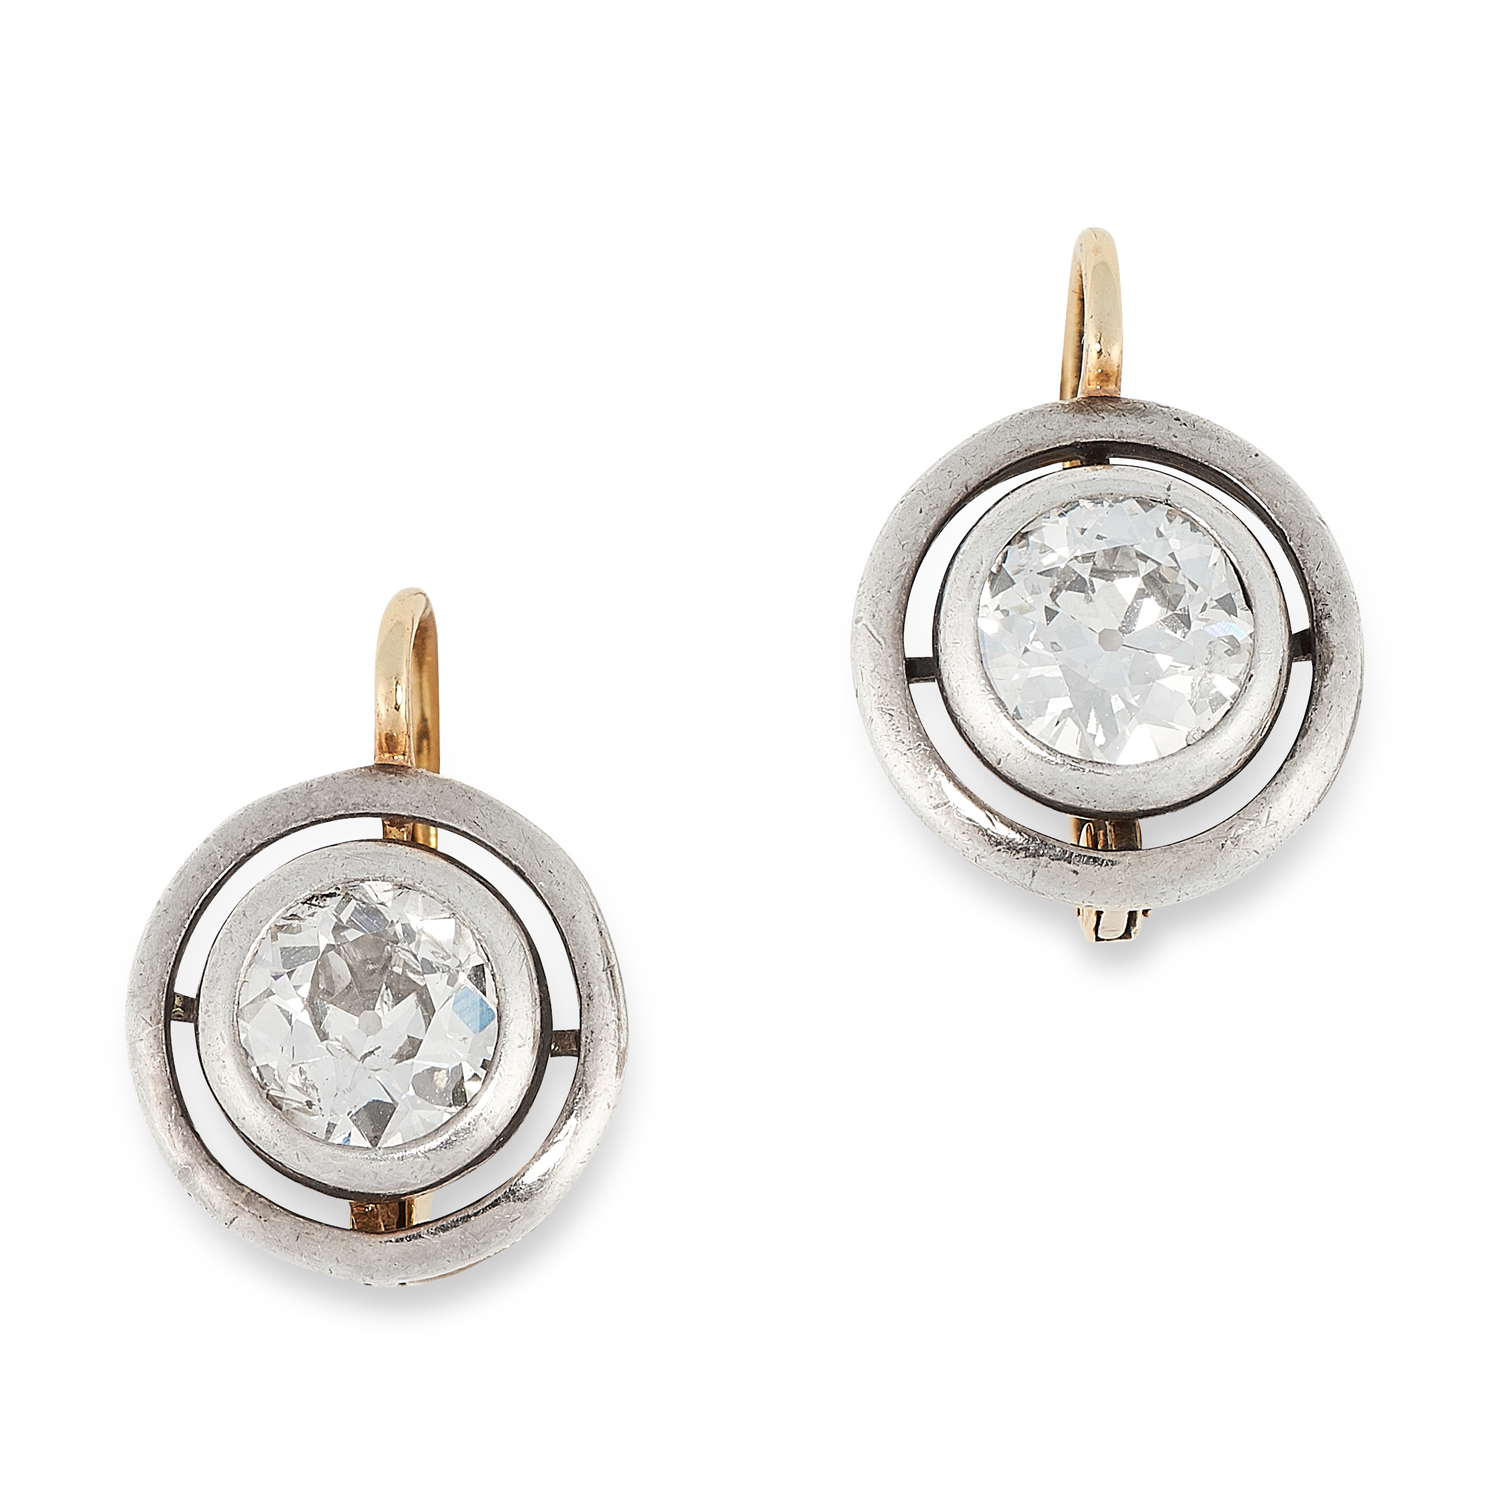 A PAIR OF ANTIQUE DIAMOND EARRINGS in yellow gold, each set with an old cut diamond totalling 1.8-